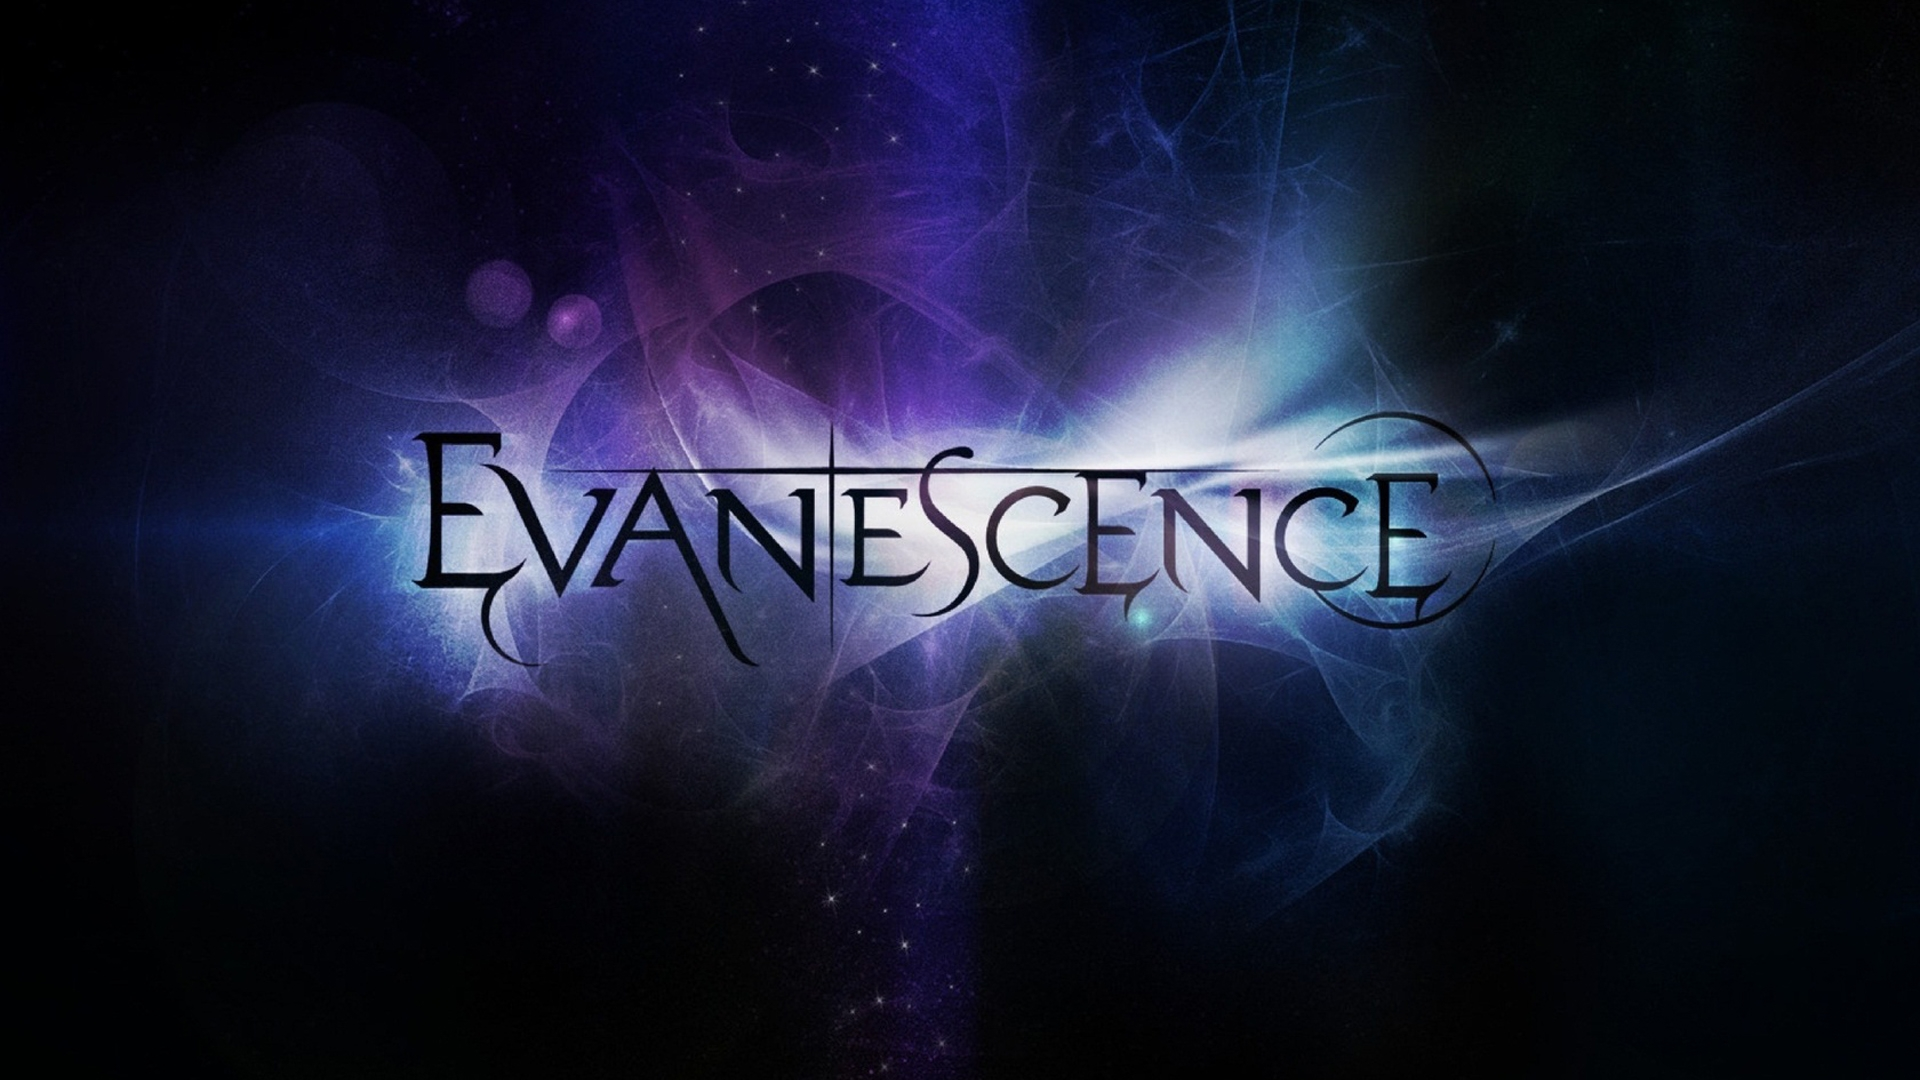 trololo blogg Hd Wallpaper Evanescence 1920x1080